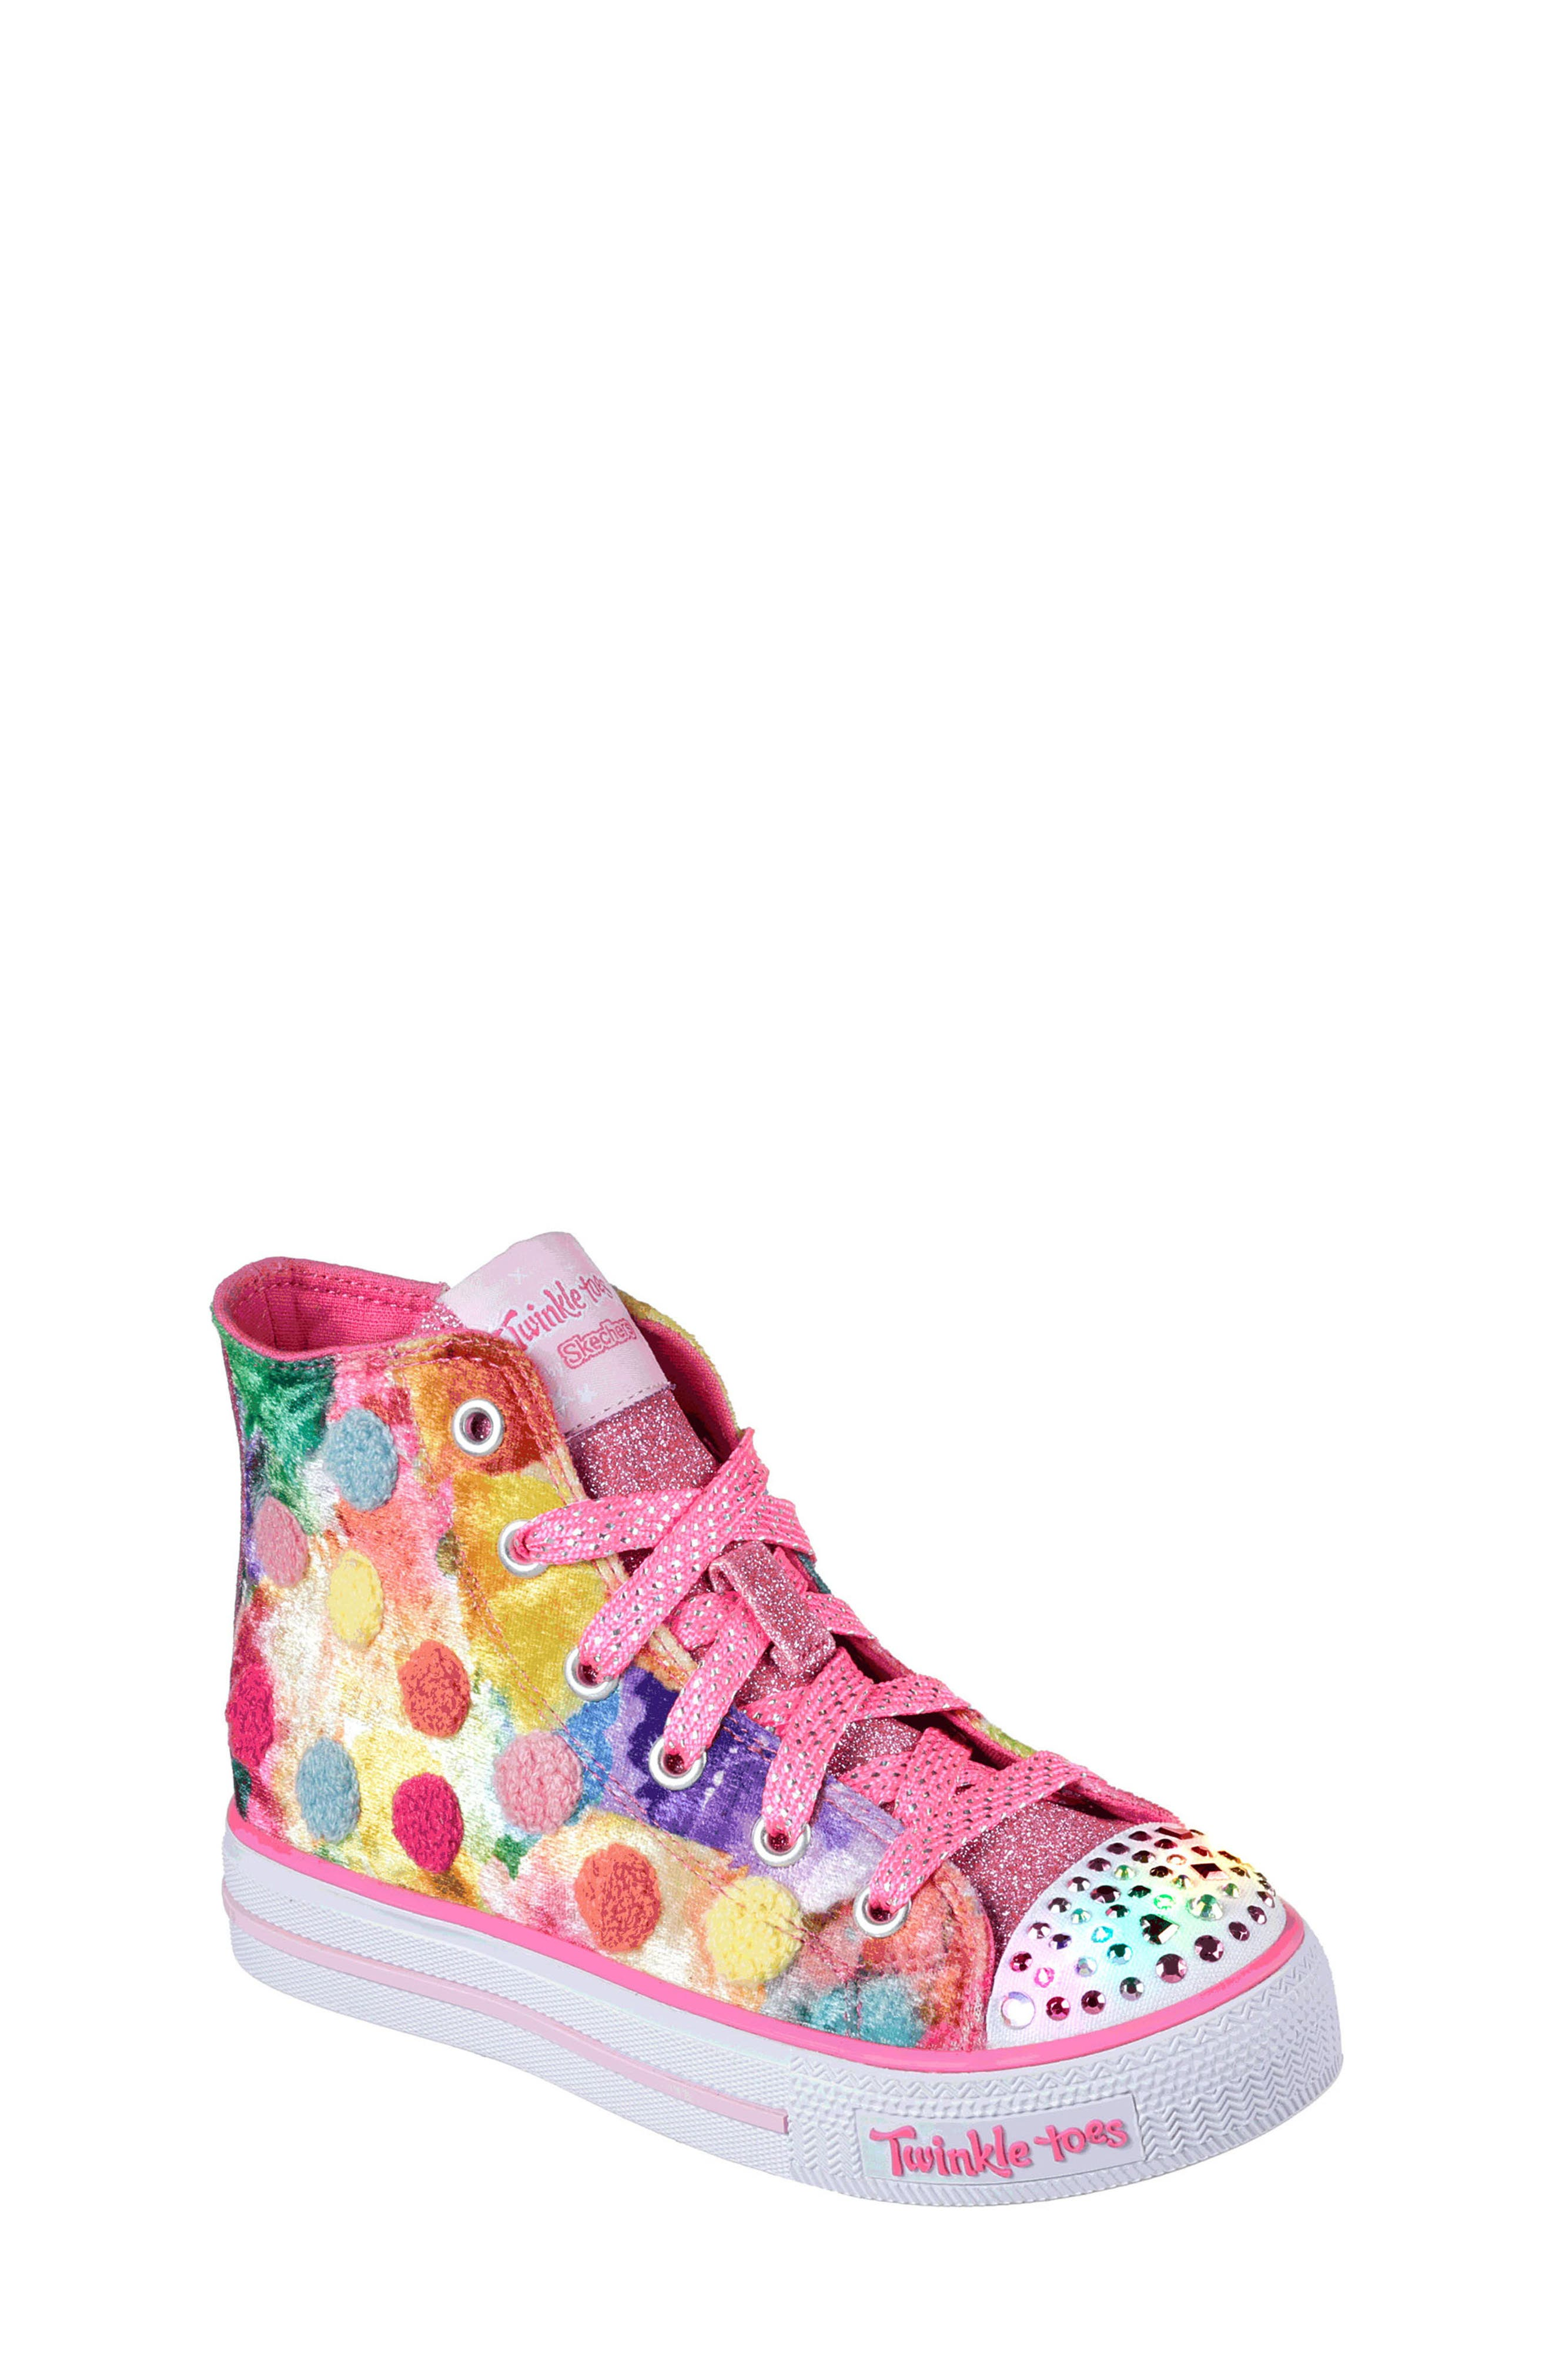 SKECHERS,                             Twinkle Toes Shuffles Light-Up High Top Sneaker,                             Main thumbnail 1, color,                             650